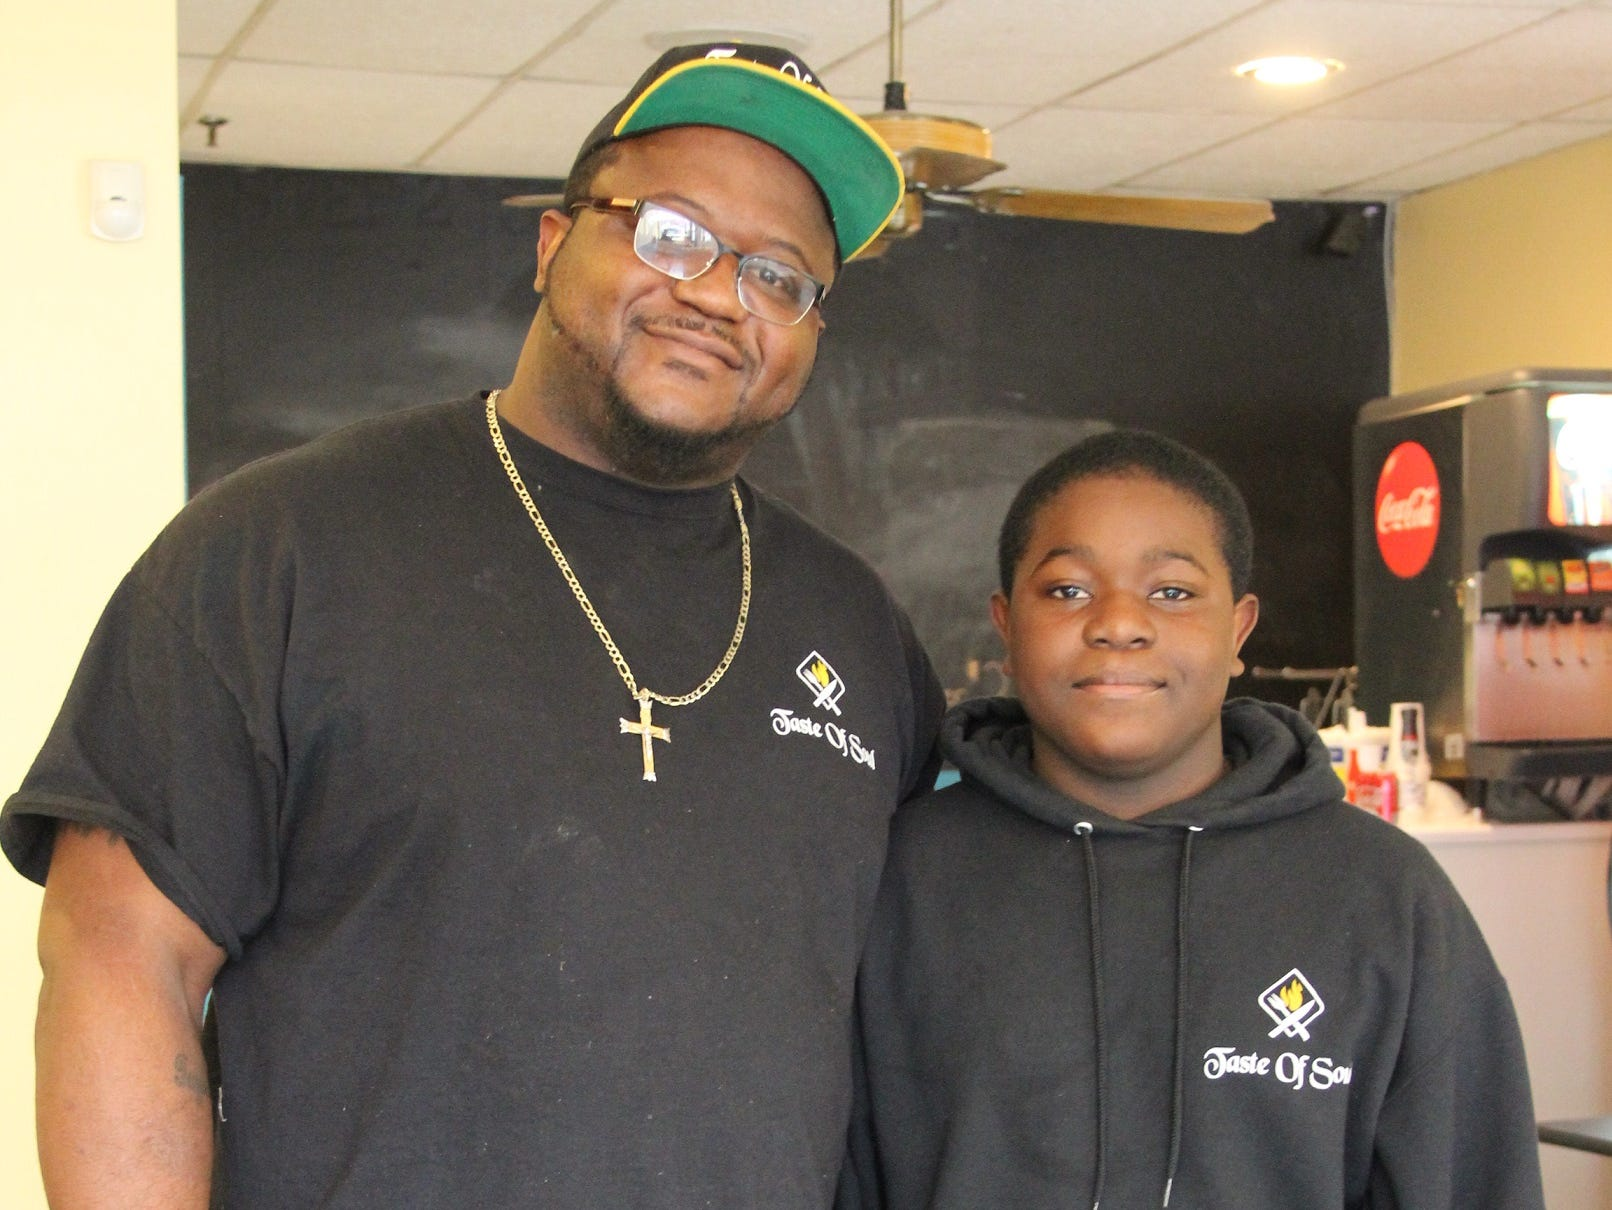 Taste of Soul owner Tim Lee, 38, of LeRoy, Genesee County, and his son Timothy Lee Jr.